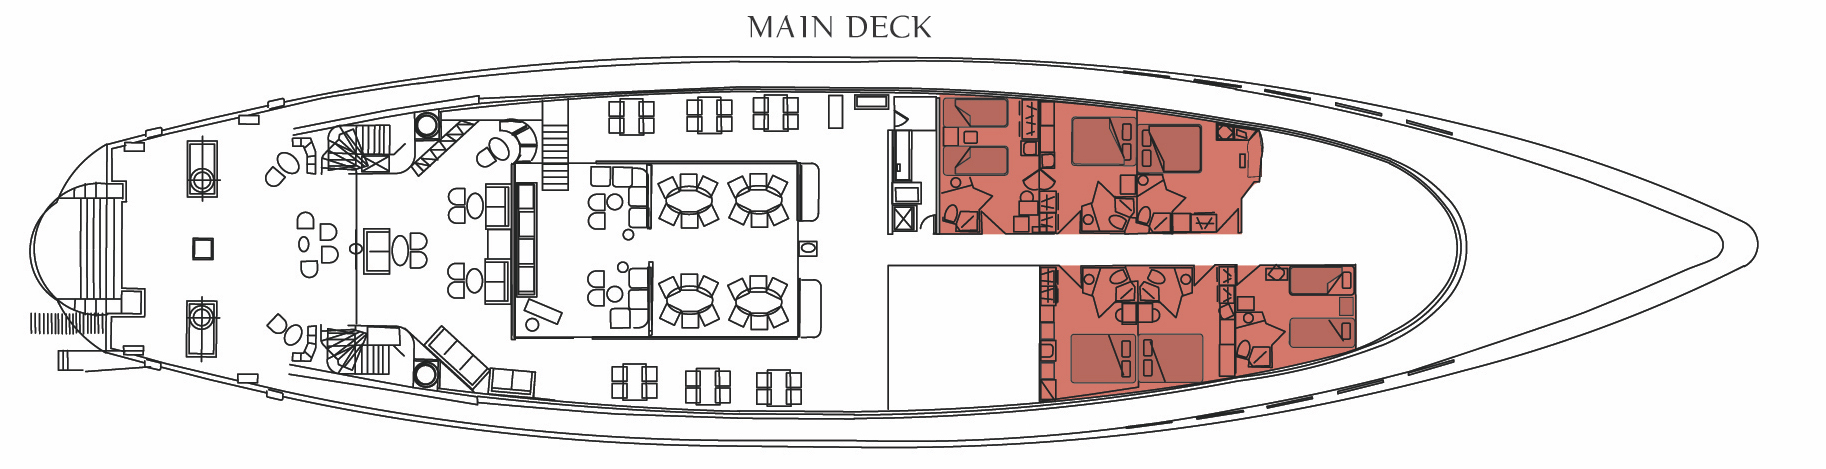 Variety Cruises Panorama Deck Plans Main Deck.jpg